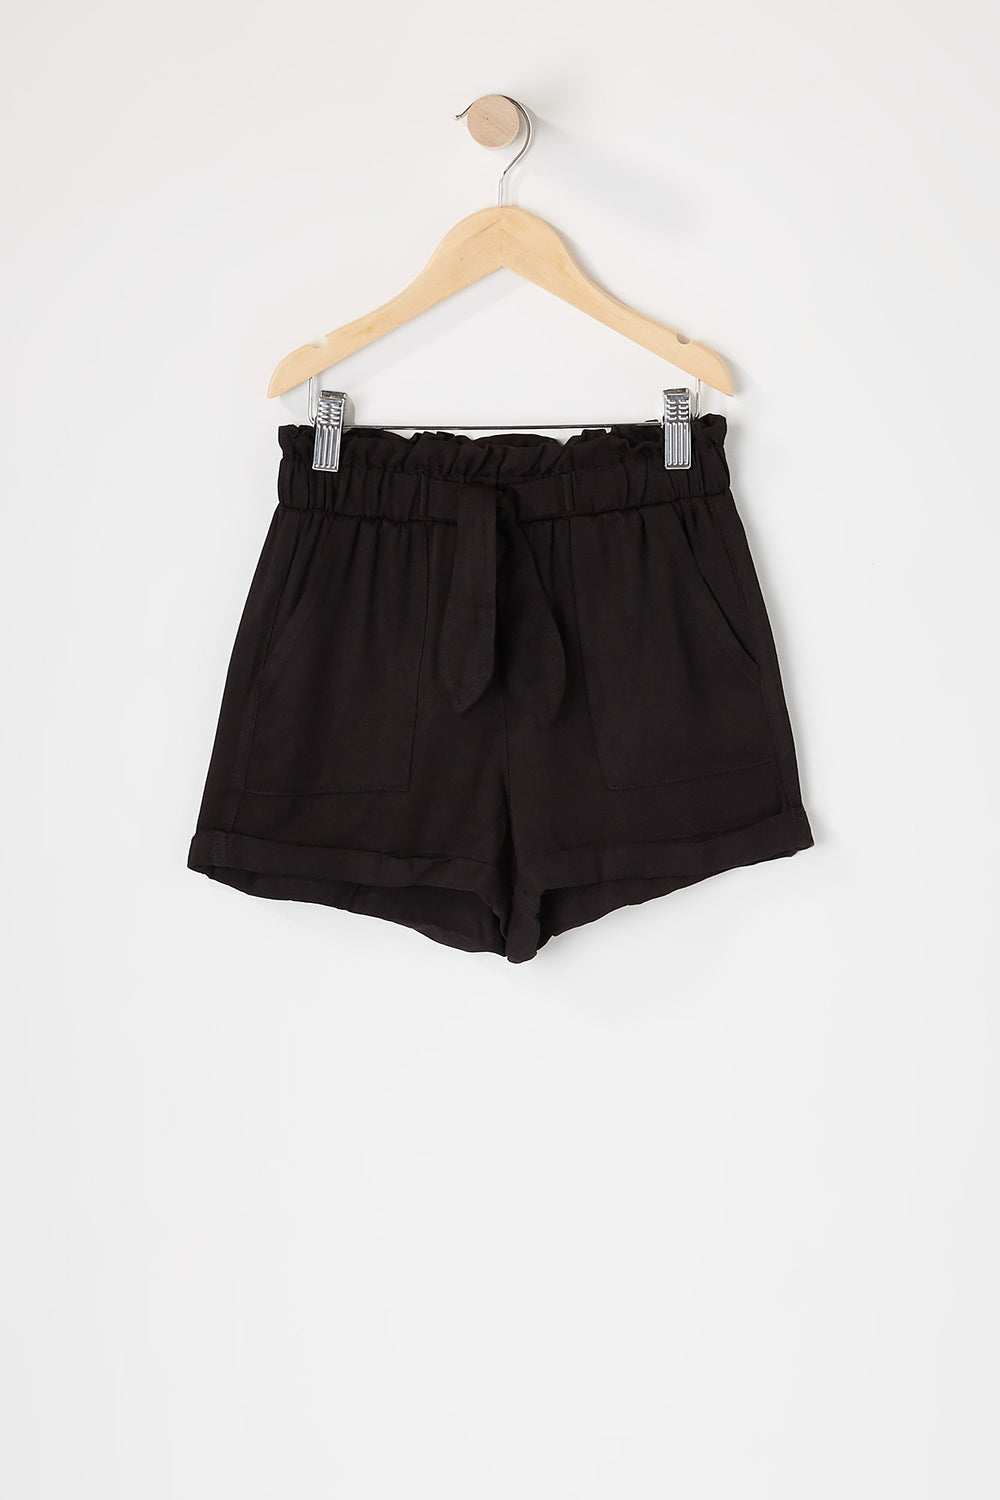 Girls Paperbag Cuffed Self Tie Short Black